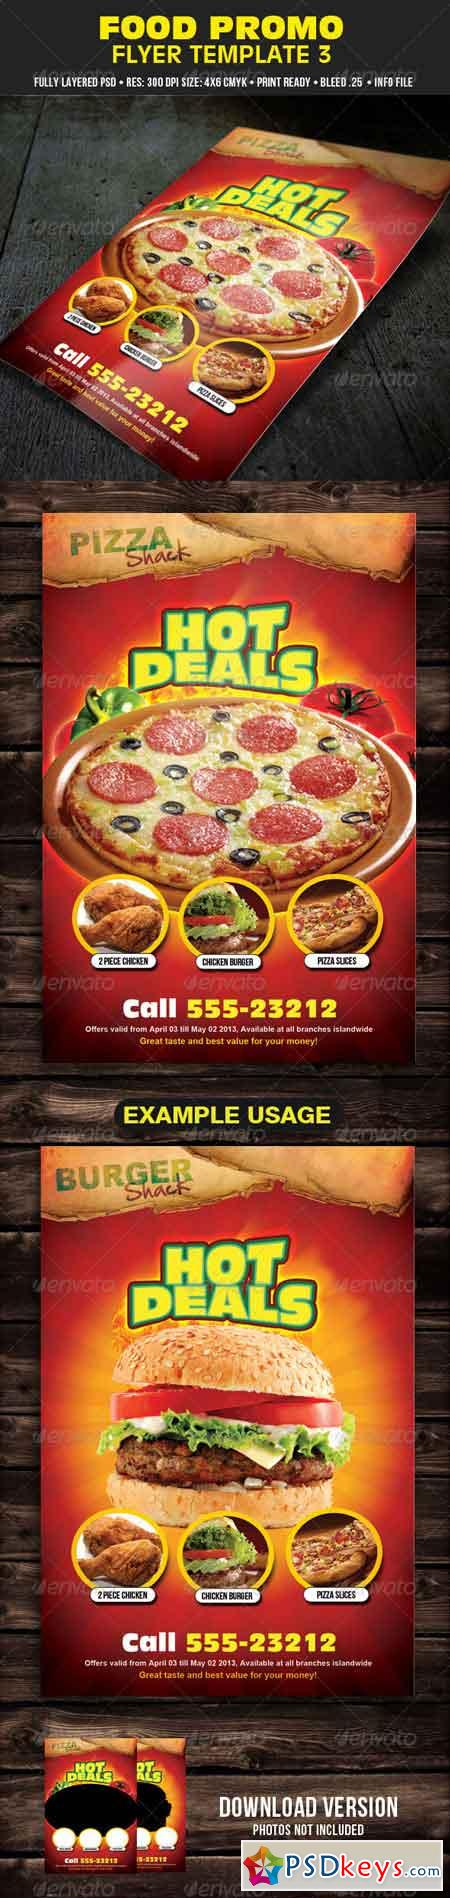 Food Promo Flyer Template 3 4427886